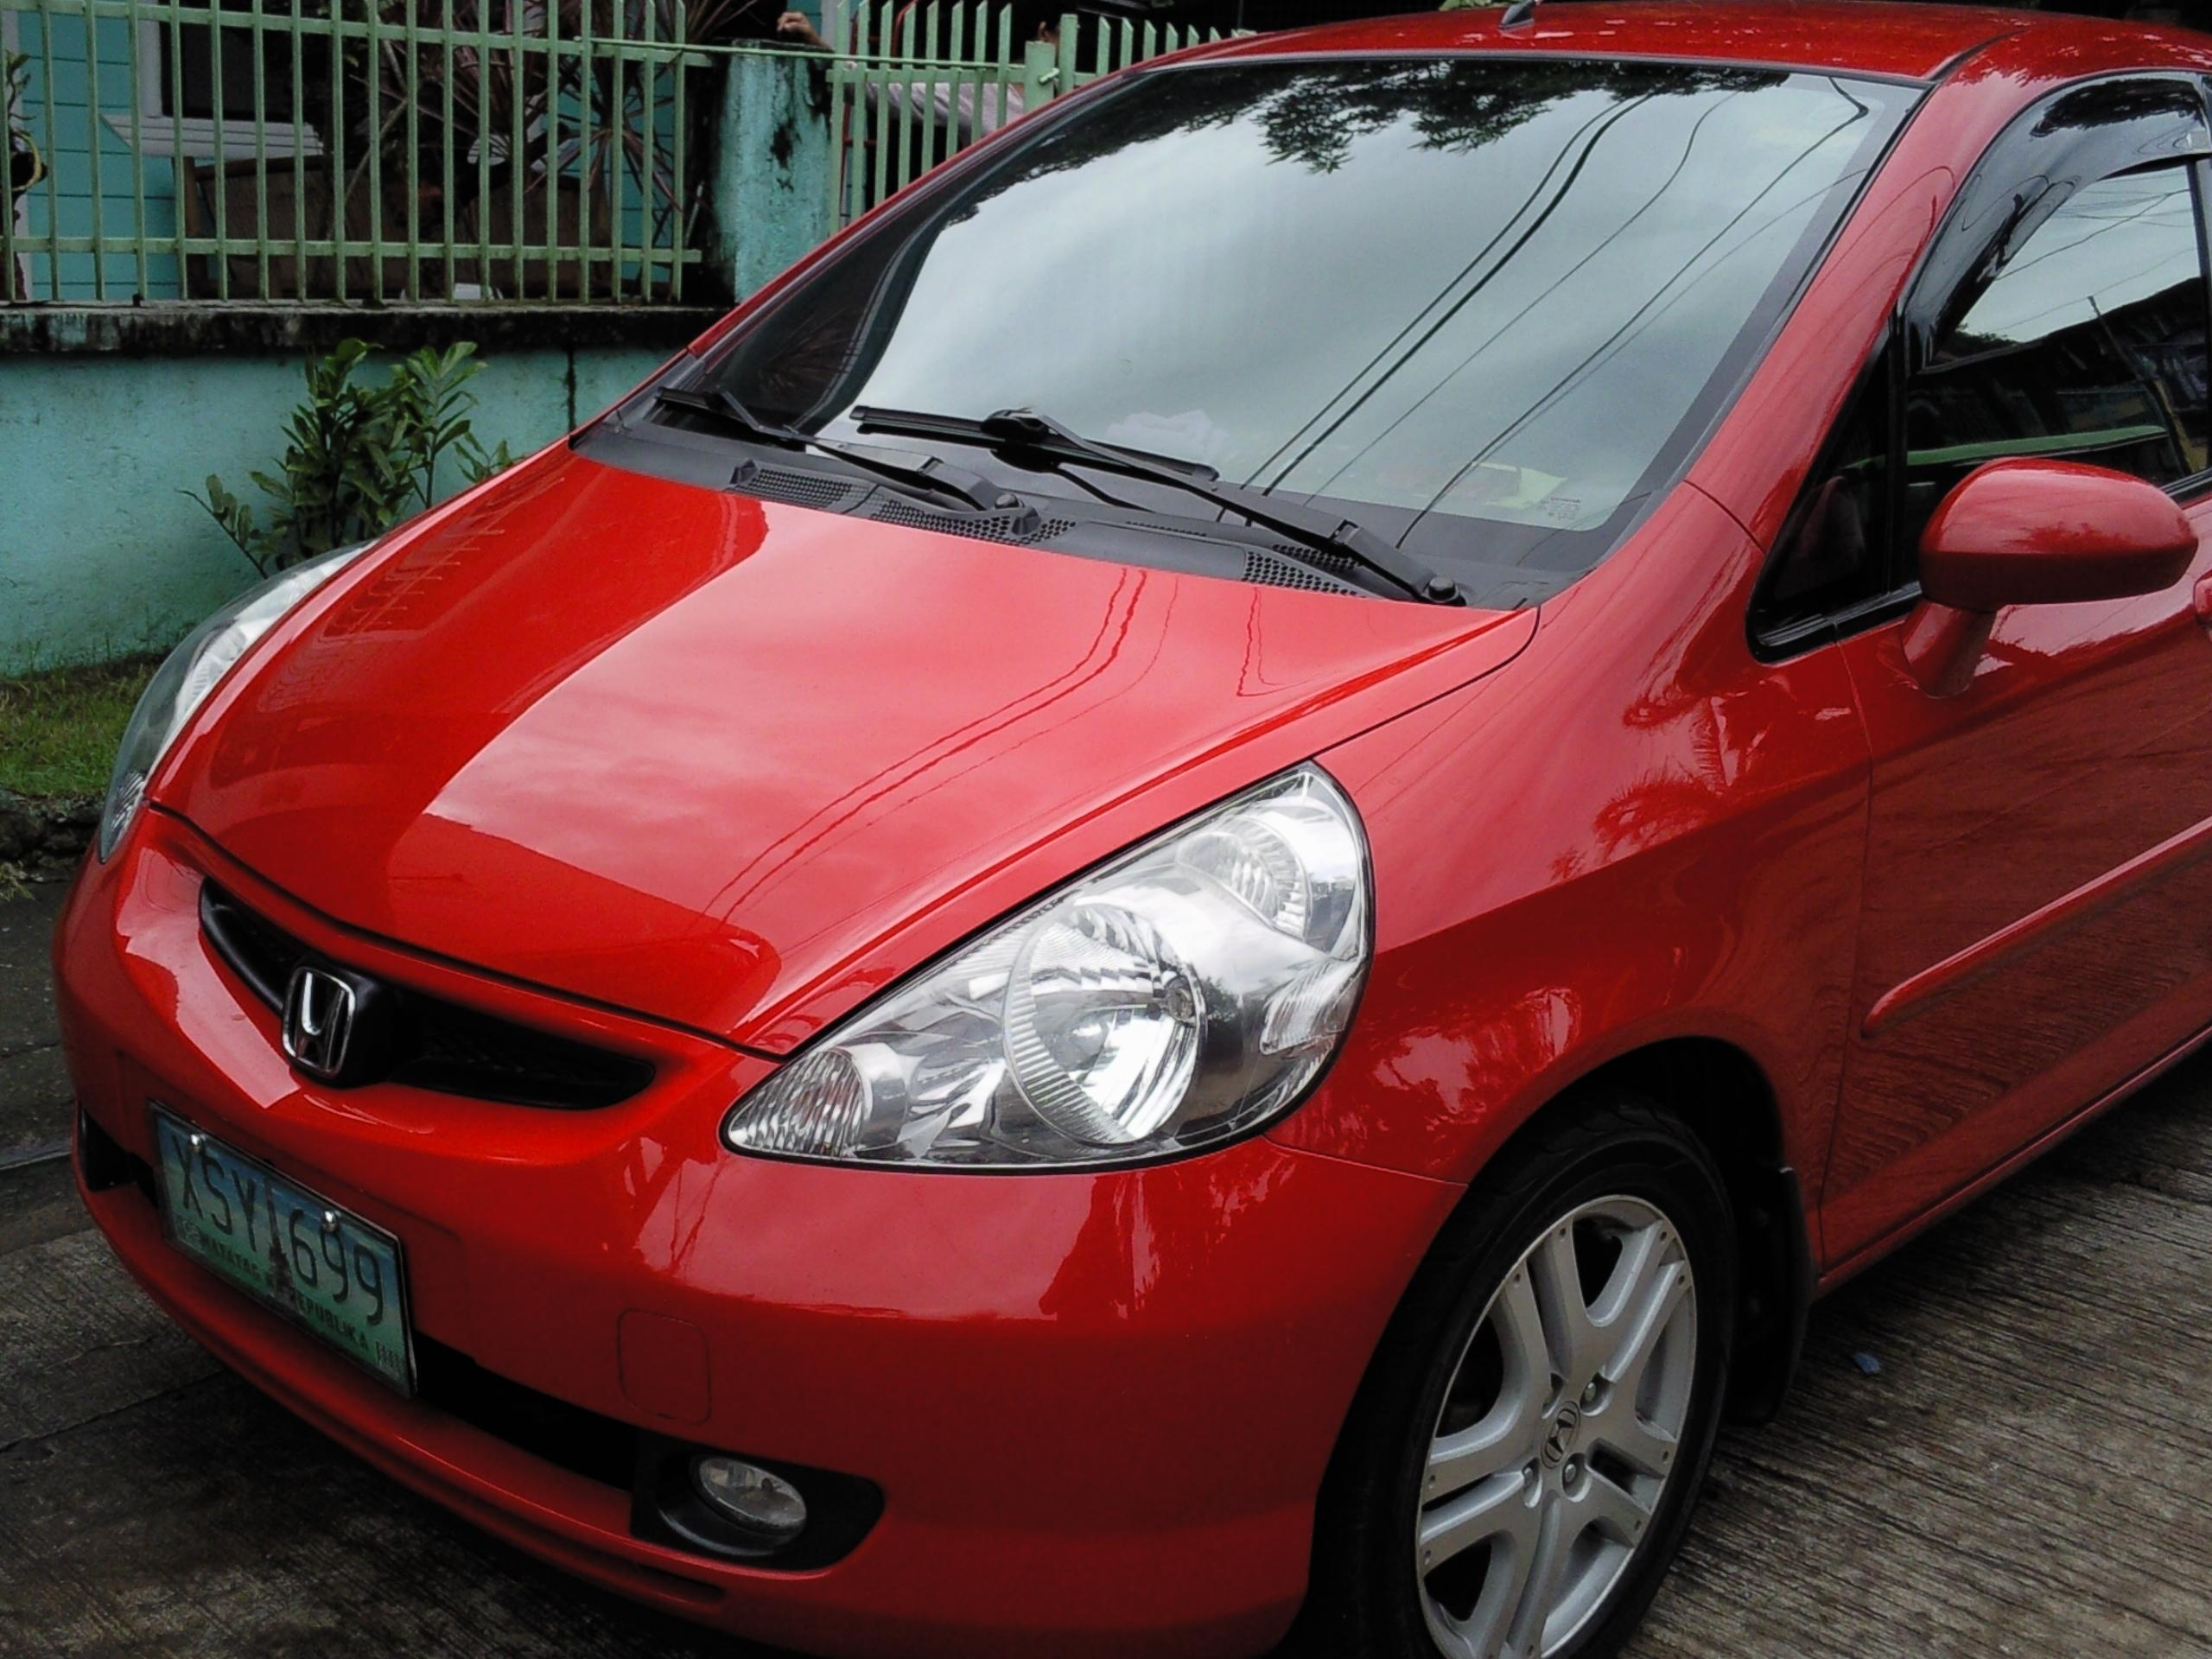 lioncid 2005 honda jazz specs photos modification info at cardomain. Black Bedroom Furniture Sets. Home Design Ideas